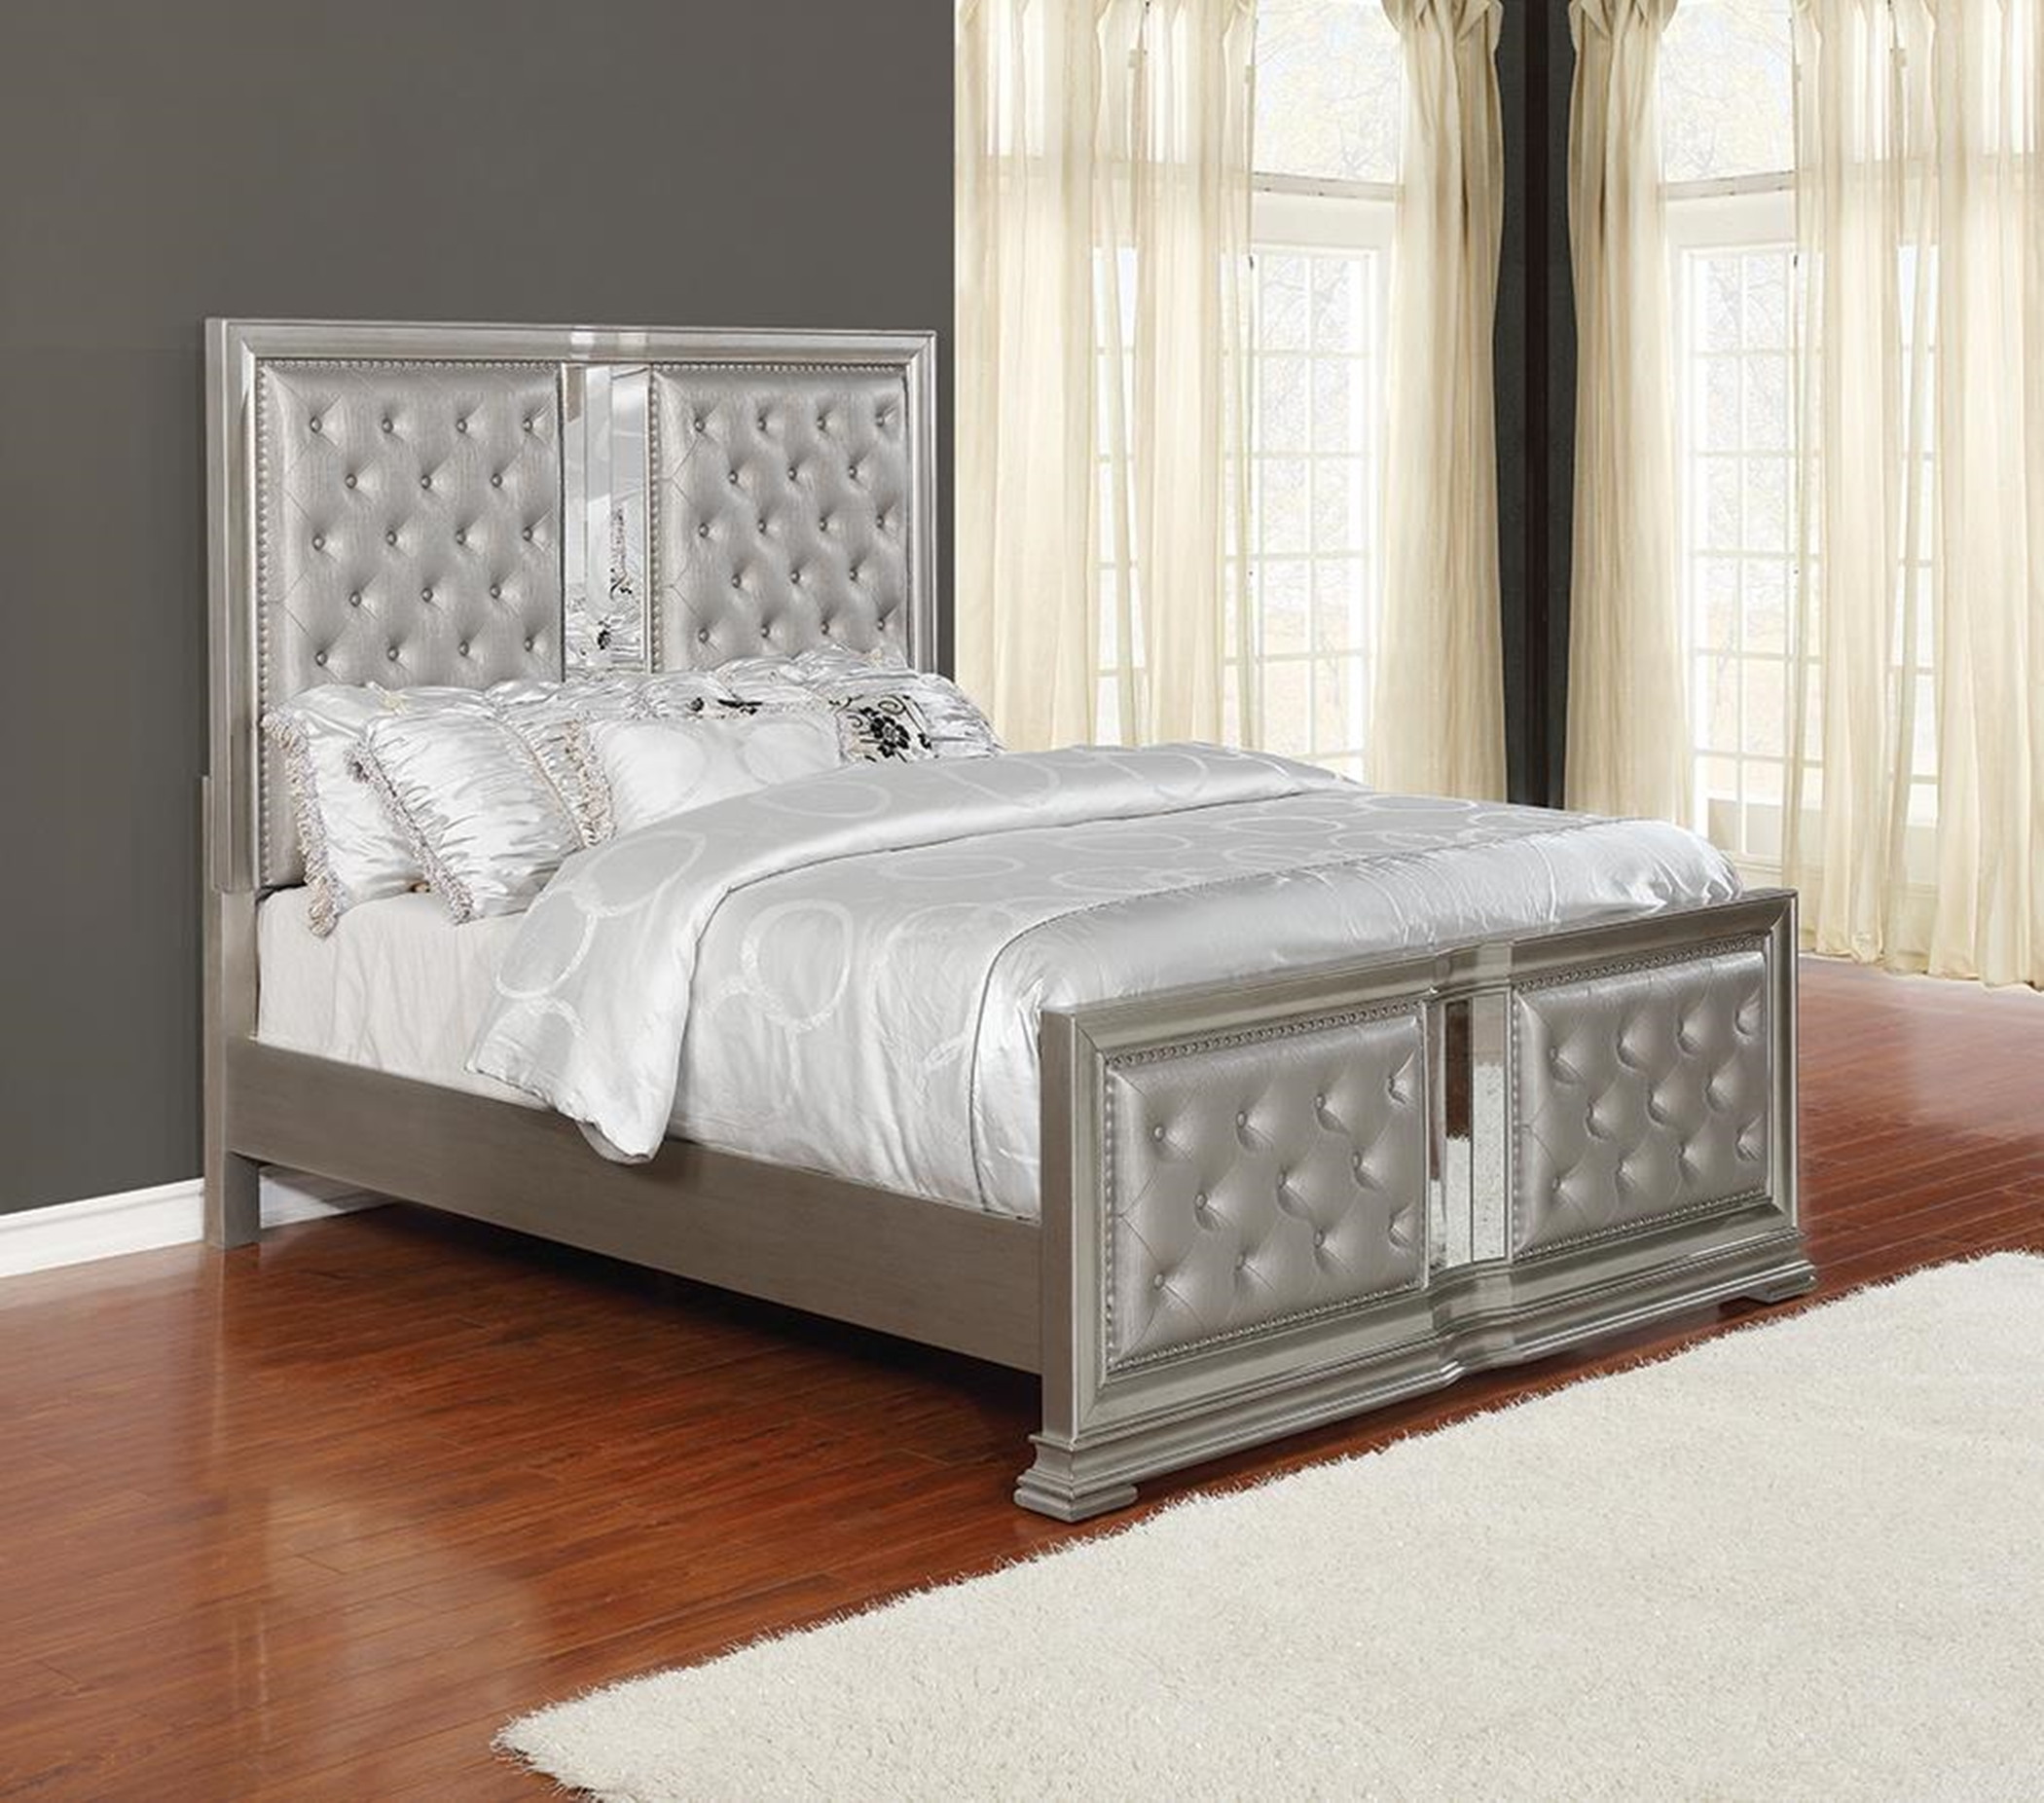 Adele Metallic E. King Bed